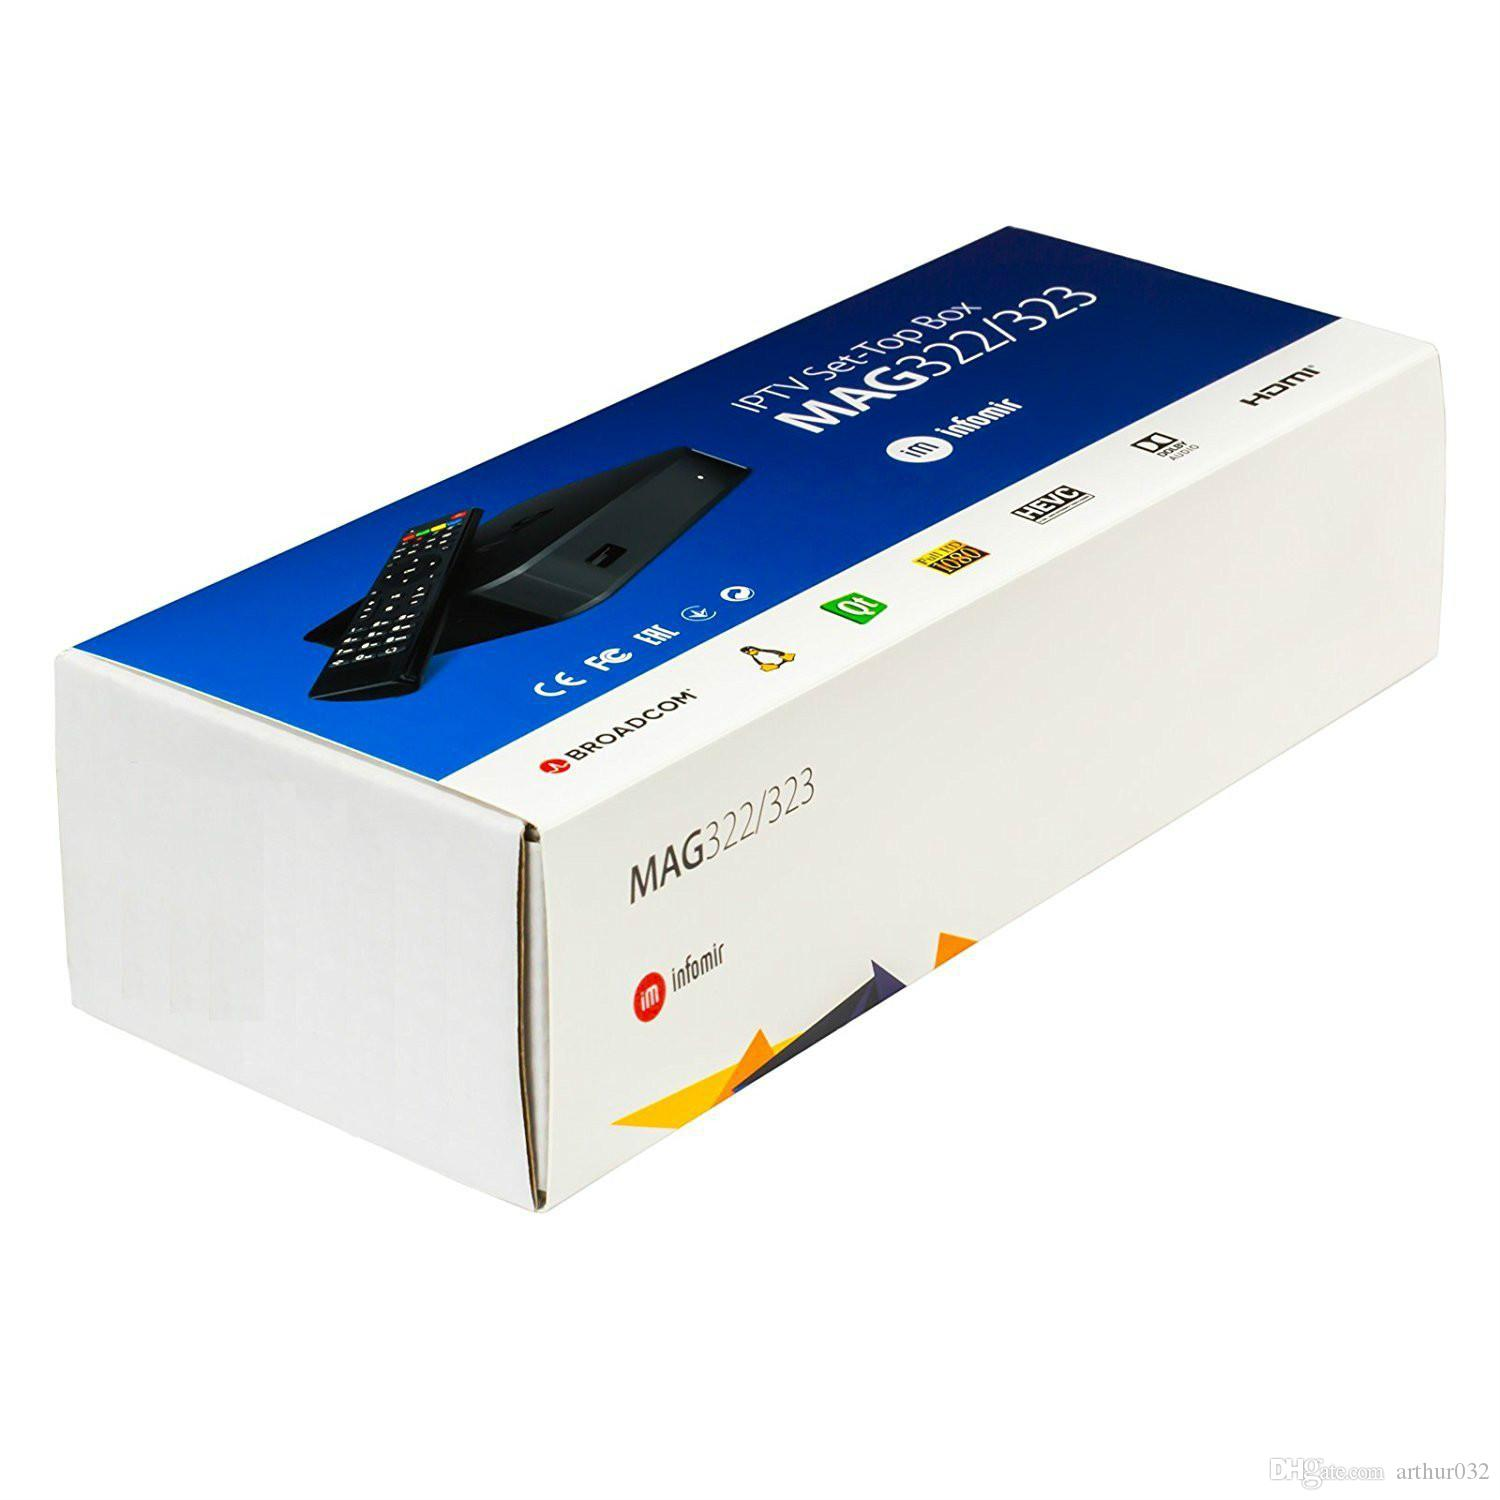 MAG322 2019 Ultimi Linux 3.3 OS Set Top Box MAG 322 con built-in WiFi WLAN HEVC H.265 IPTV Box Smart TV Media Player